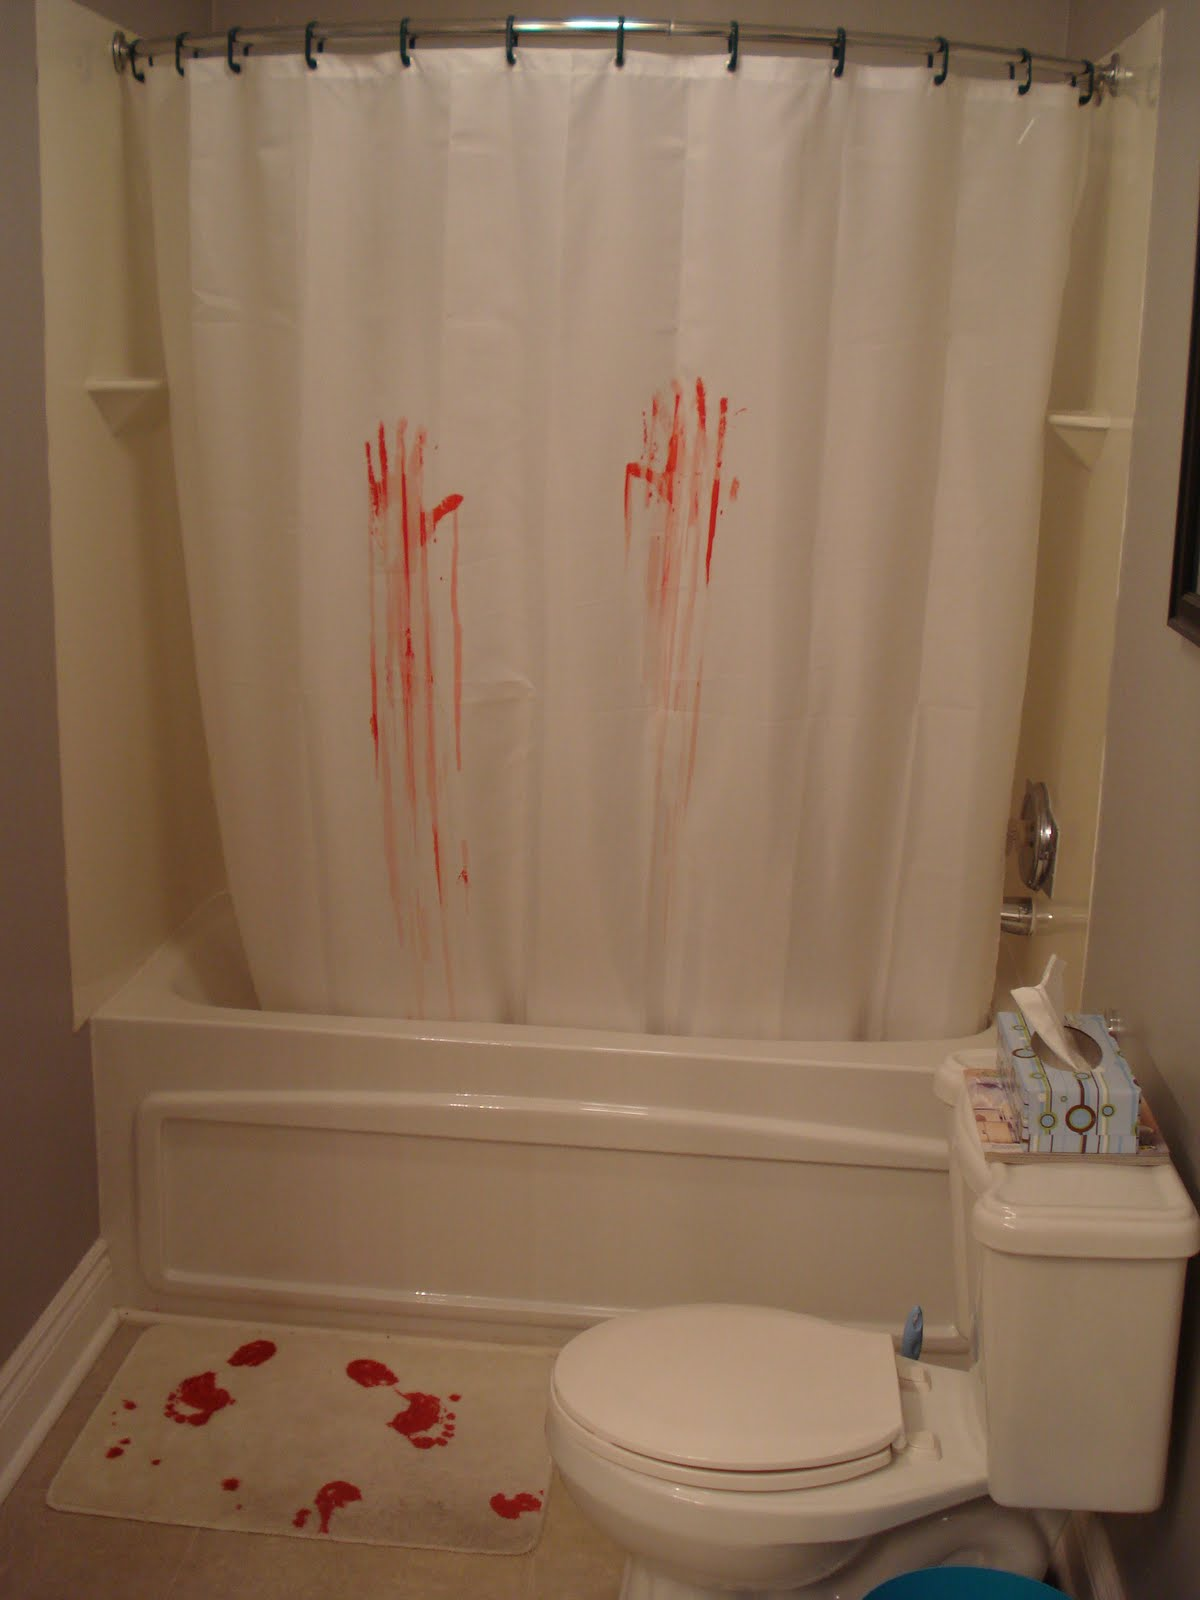 Devl design psycho bathroom redux a grim failure for Psycho shower curtain and bath mat